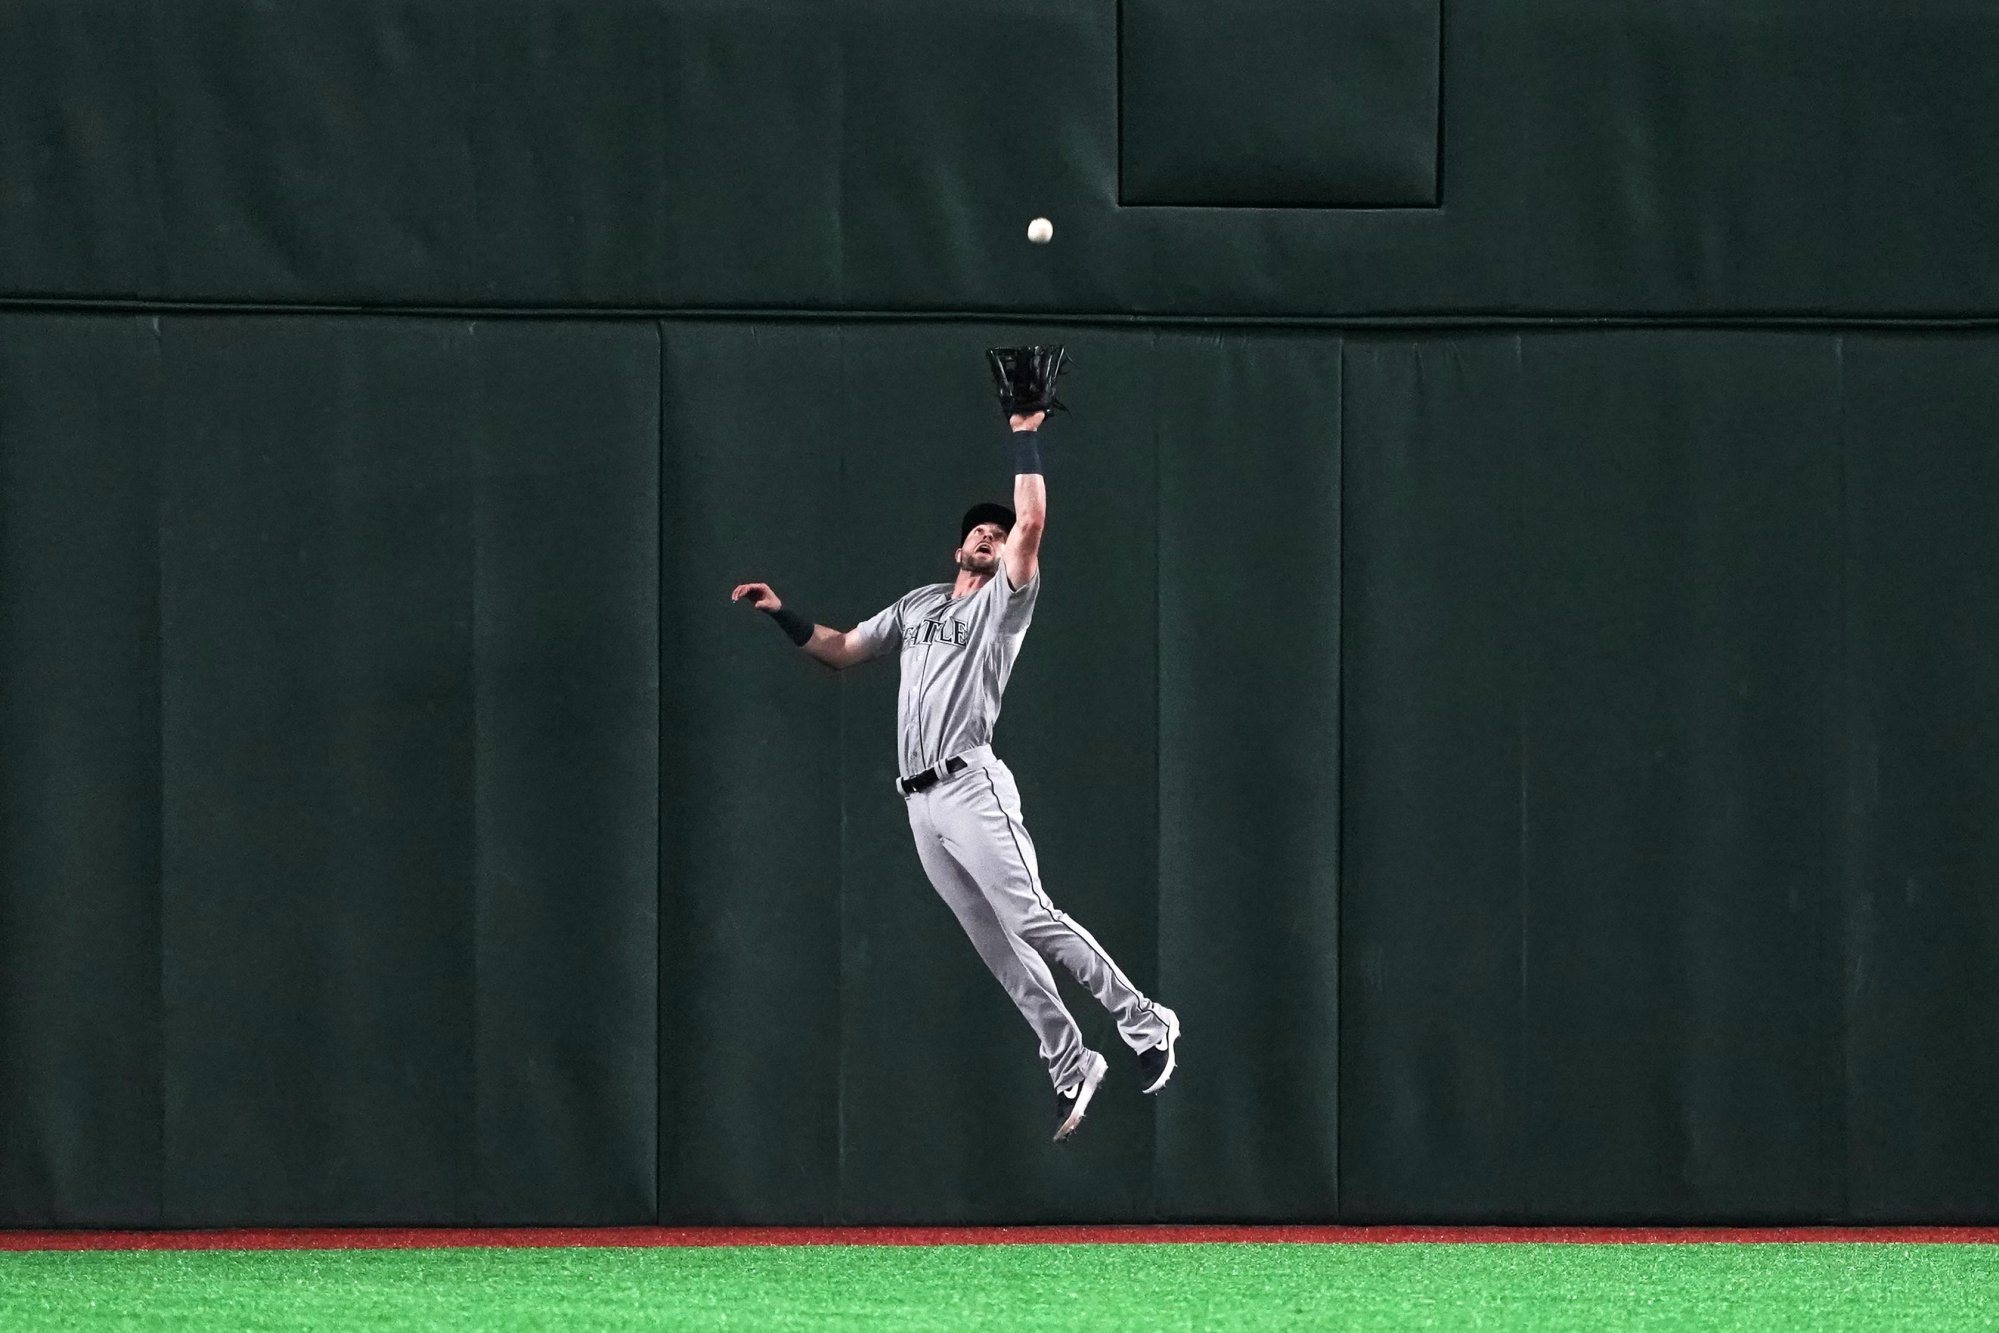 TOKYO, JAPAN - MARCH 20: Outfielder Mitch Haniger #17 of the Seattle Mariners leaps for a fly by Outfielder Stephen Piscotty #25 of the Oakland Athletics in the 7th inning during the game between Seattle Mariners and Oakland Athletics at Tokyo Dome on March 20, 2019 in Tokyo, Japan. (Photo by Masterpress/Getty Images)